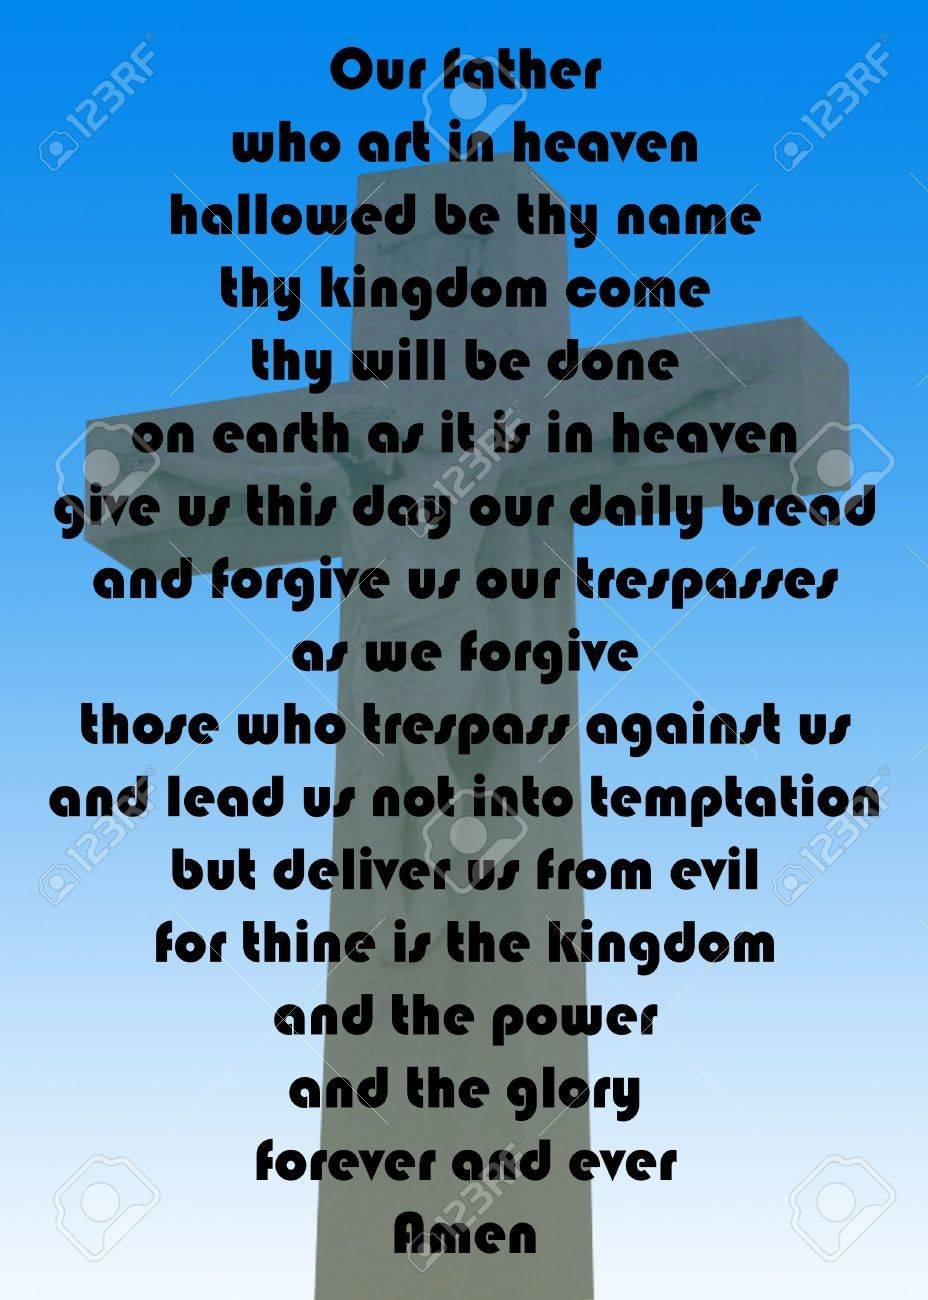 the lord u0027s prayer against a cross on a blue gradient background